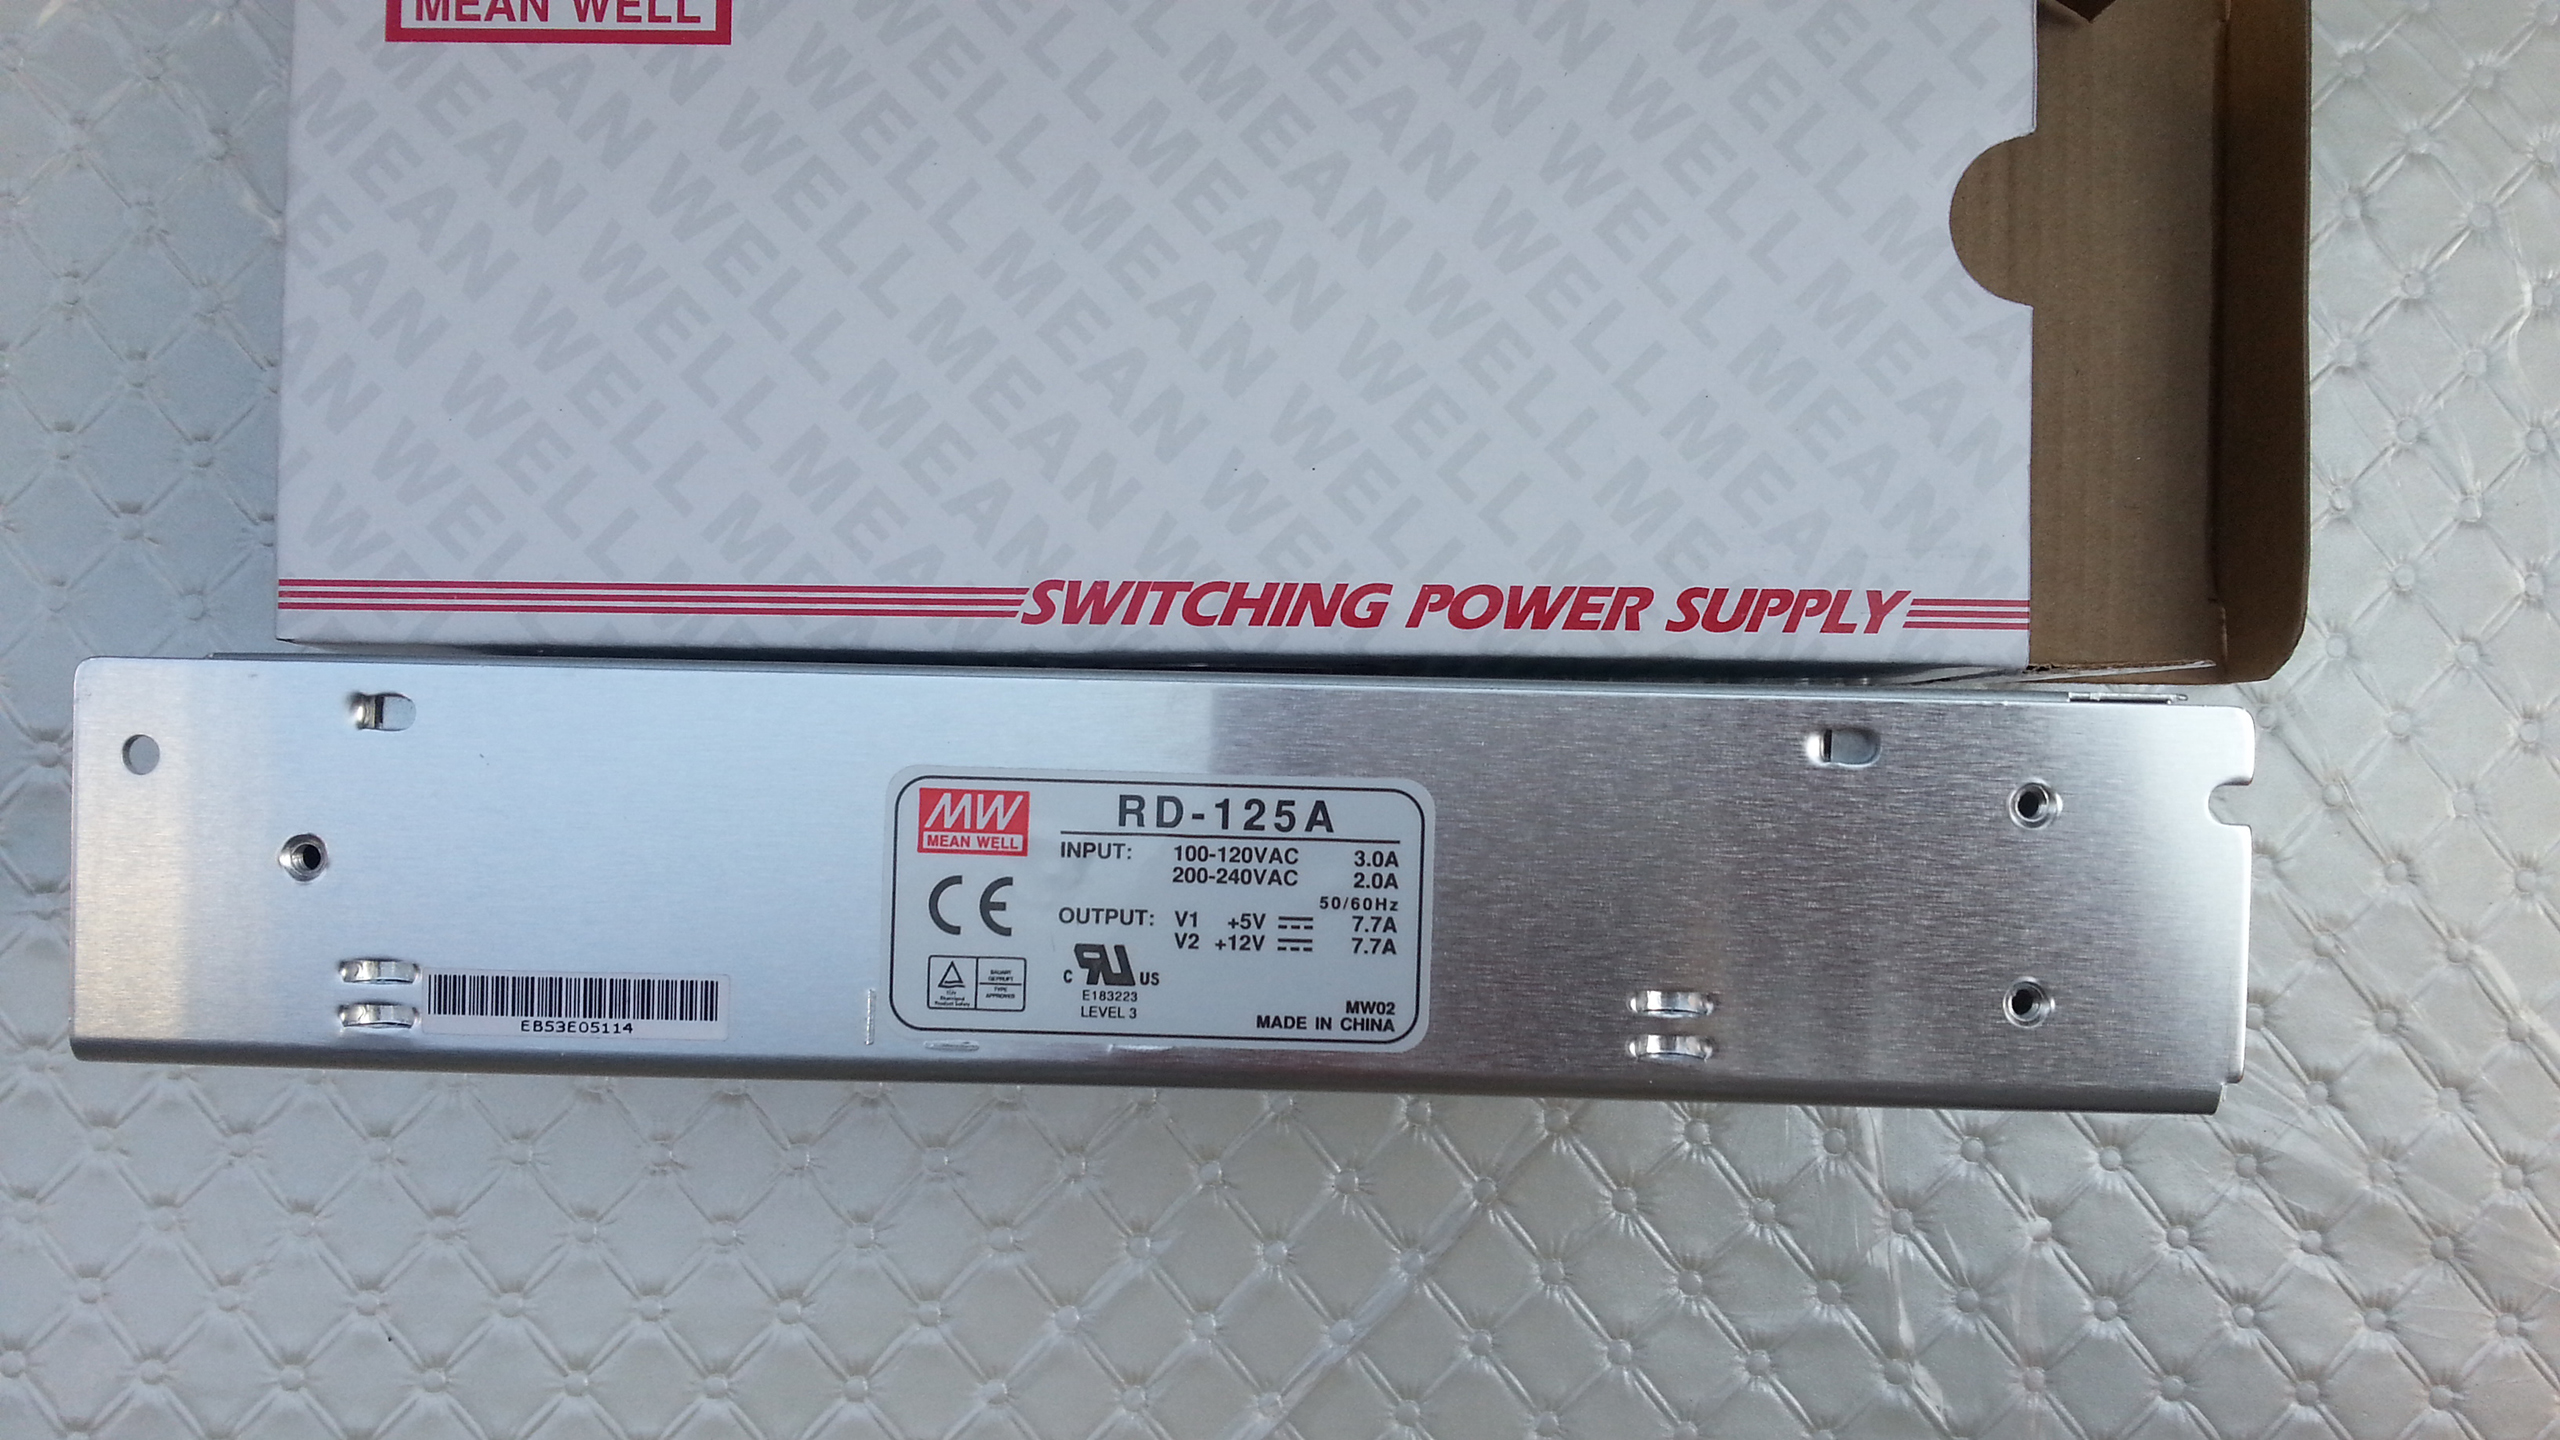 Meanwell_RD_125A_switching_power_supply